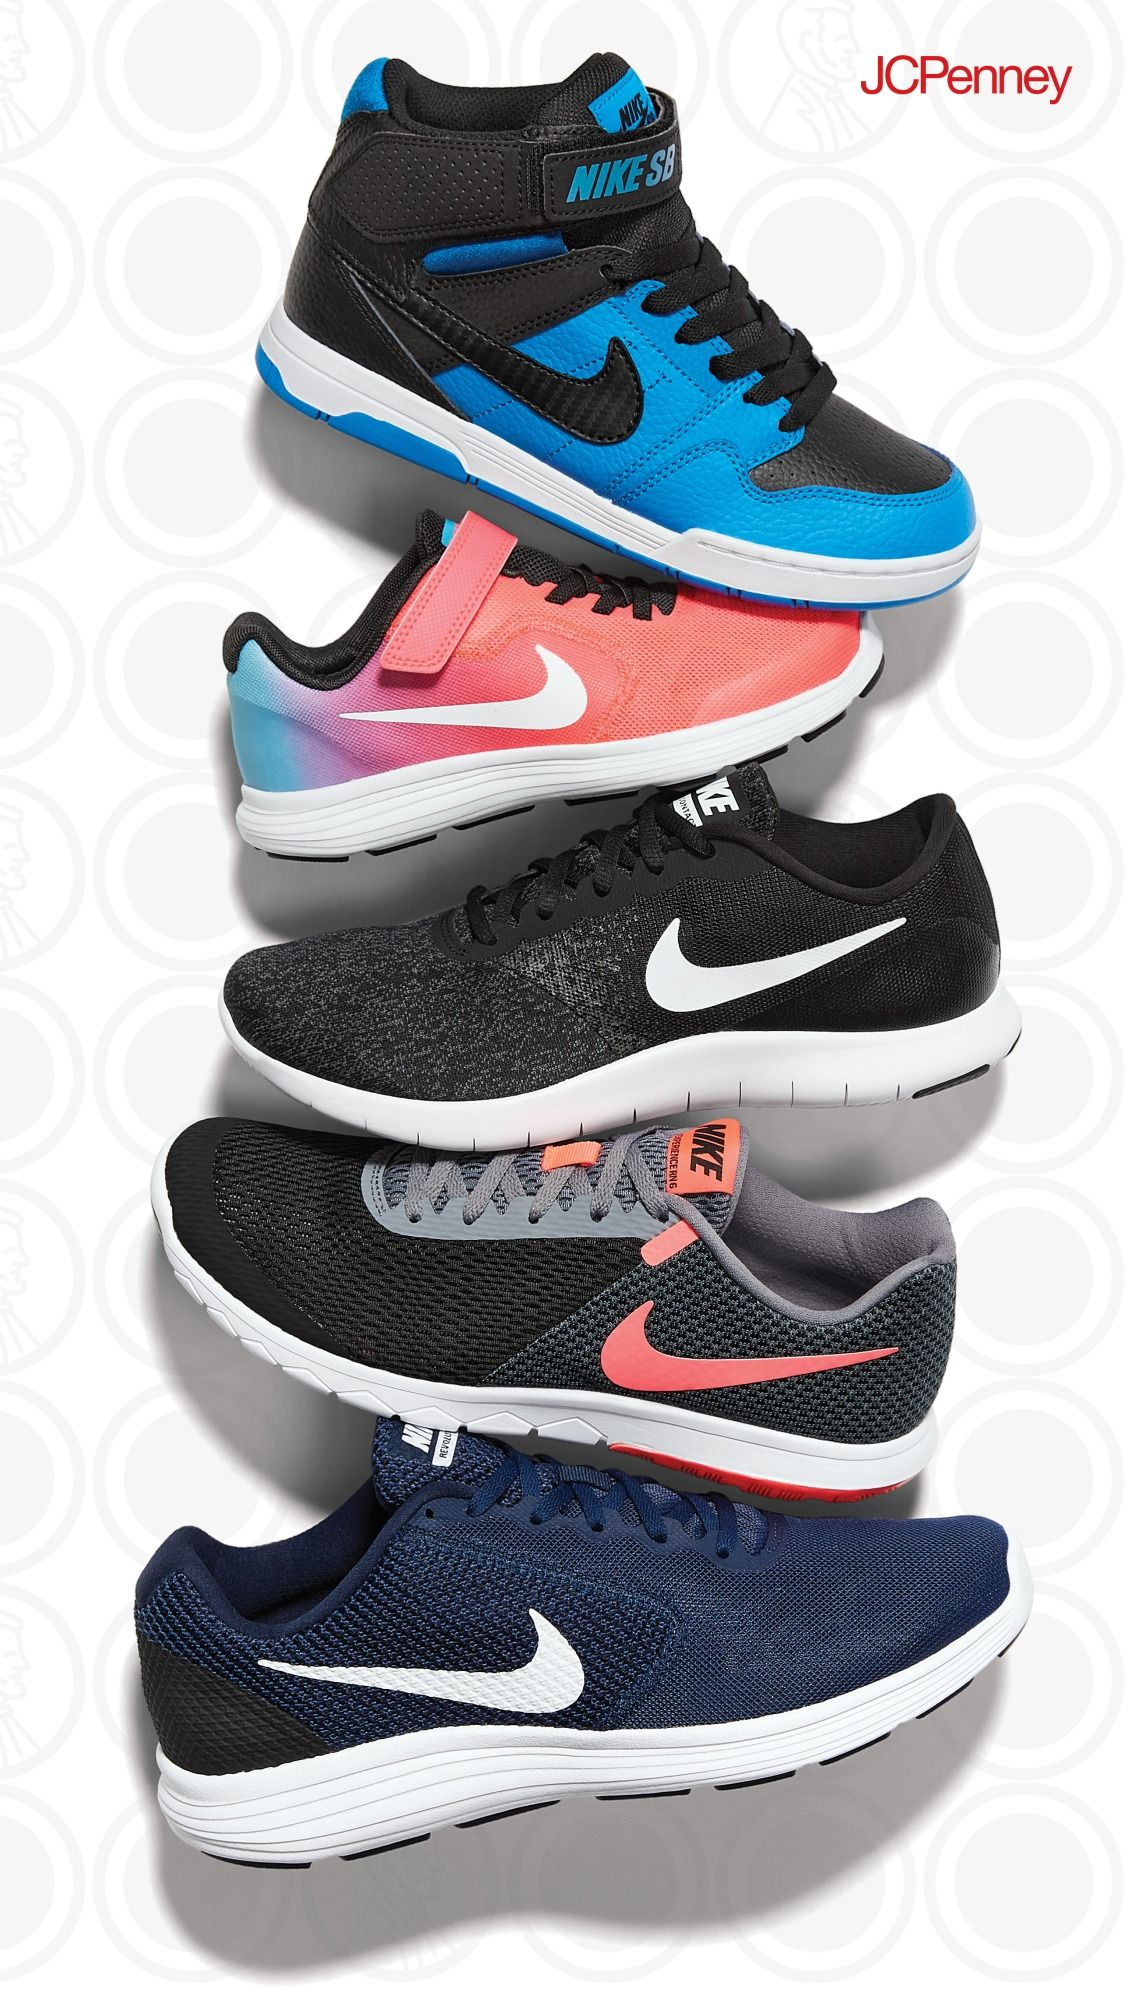 Men and women's Nike shoes give any summertime look a boost of energy. Boys'